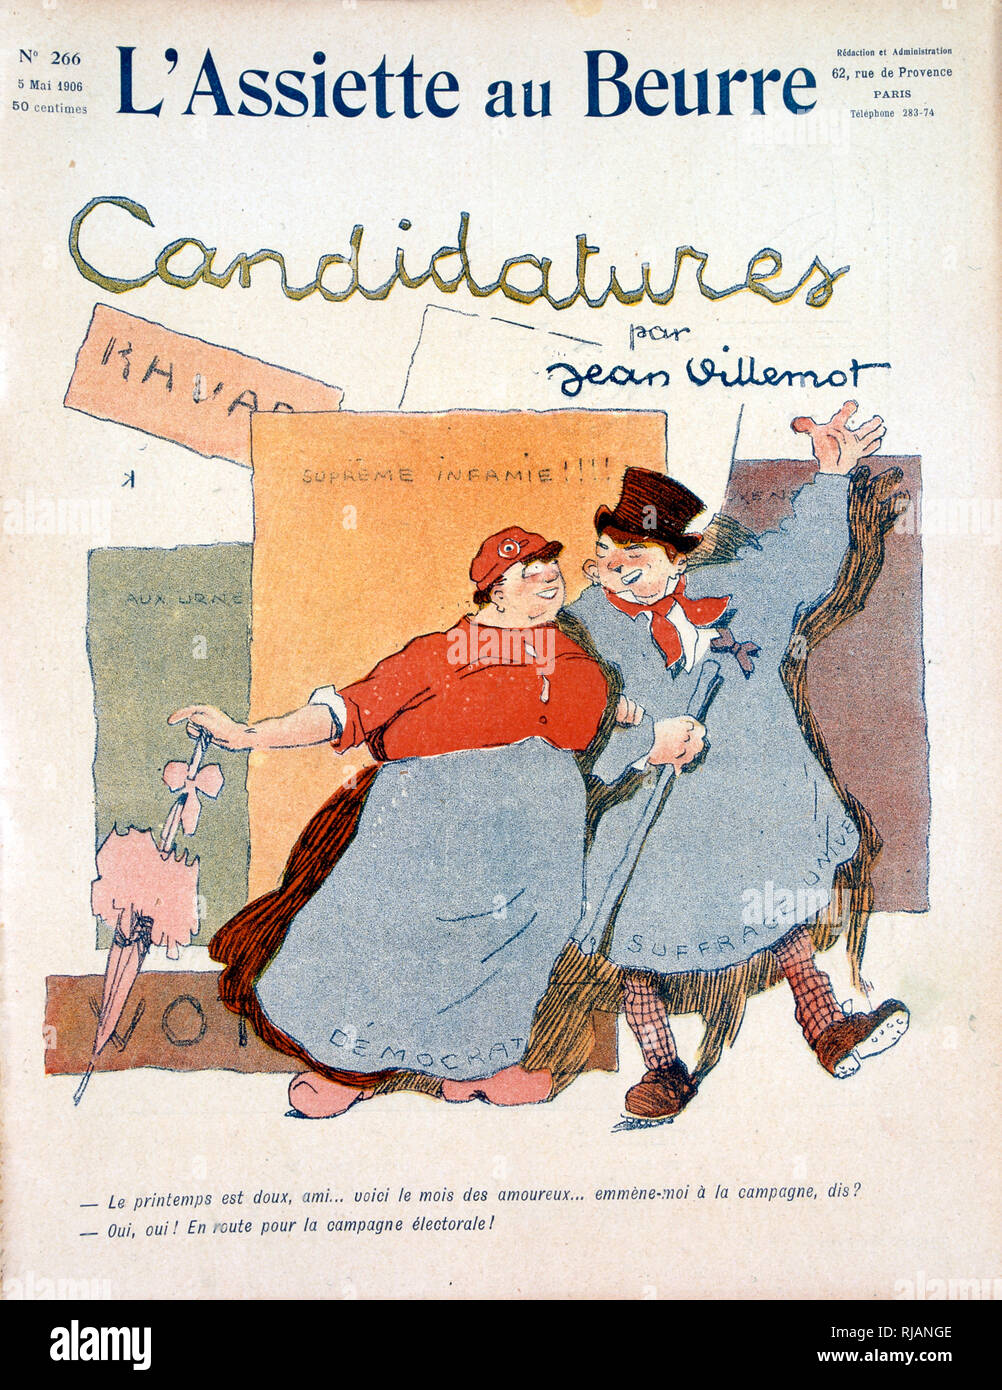 Local election candidates in1905,  Illustration from 'L'Assiette au Beurre', an illustrated French weekly satirical magazine with anarchist political leanings that was chiefly produced between 1901 and 1912. - Stock Image